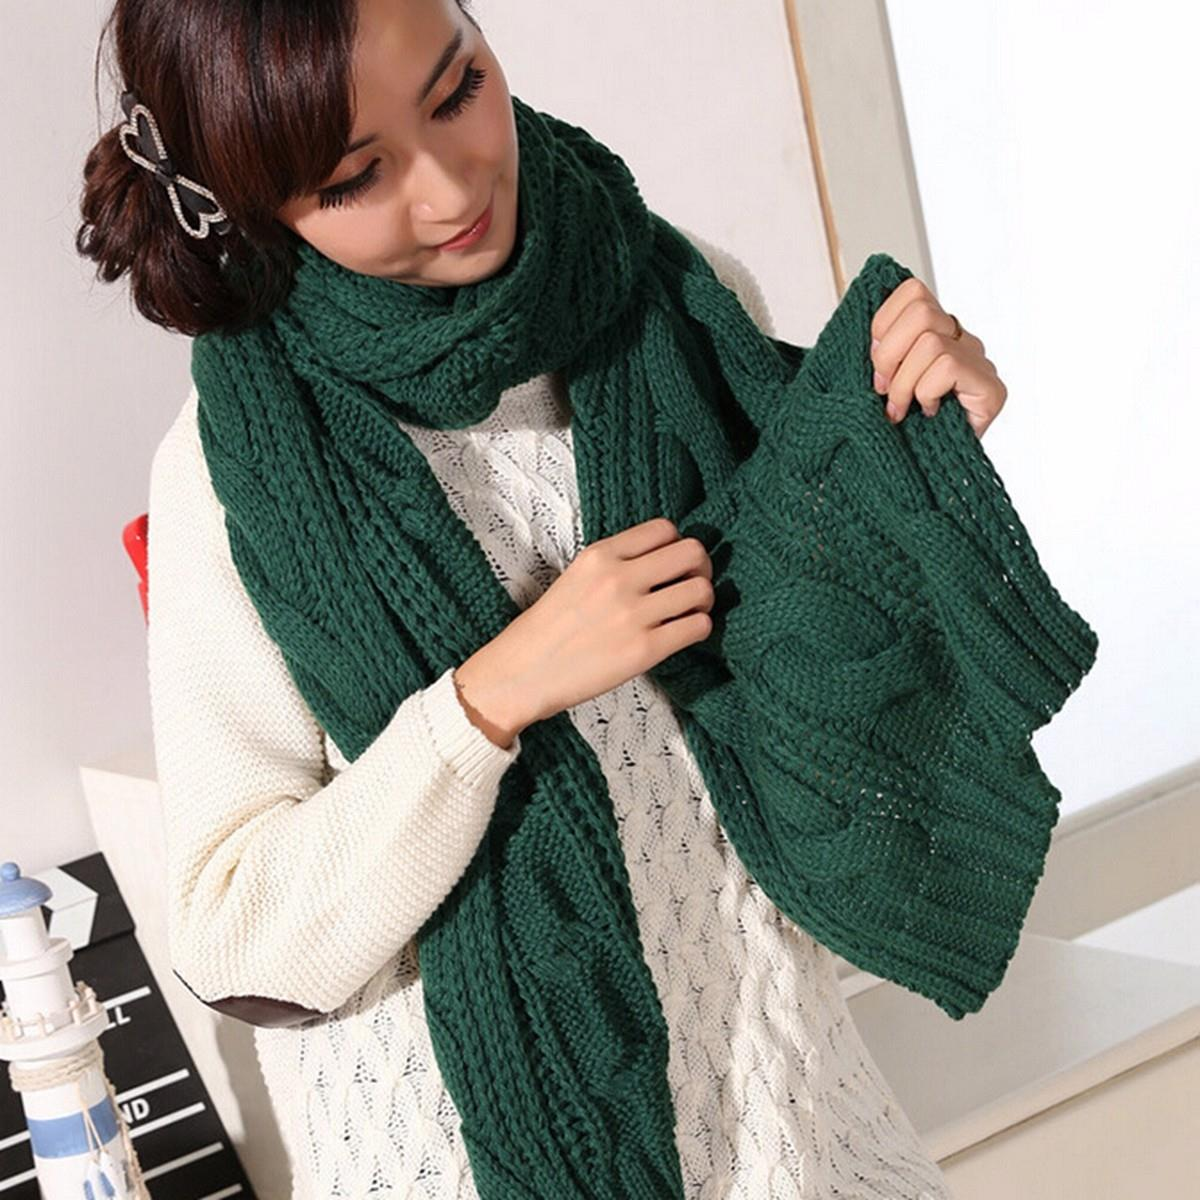 2016 Autumn Winter Fashion Lady Long Imitation Cashmere Warm Knit Scarf Shawl Women Solid Thick Winter Neck Scarves For Choice(China (Mainland))